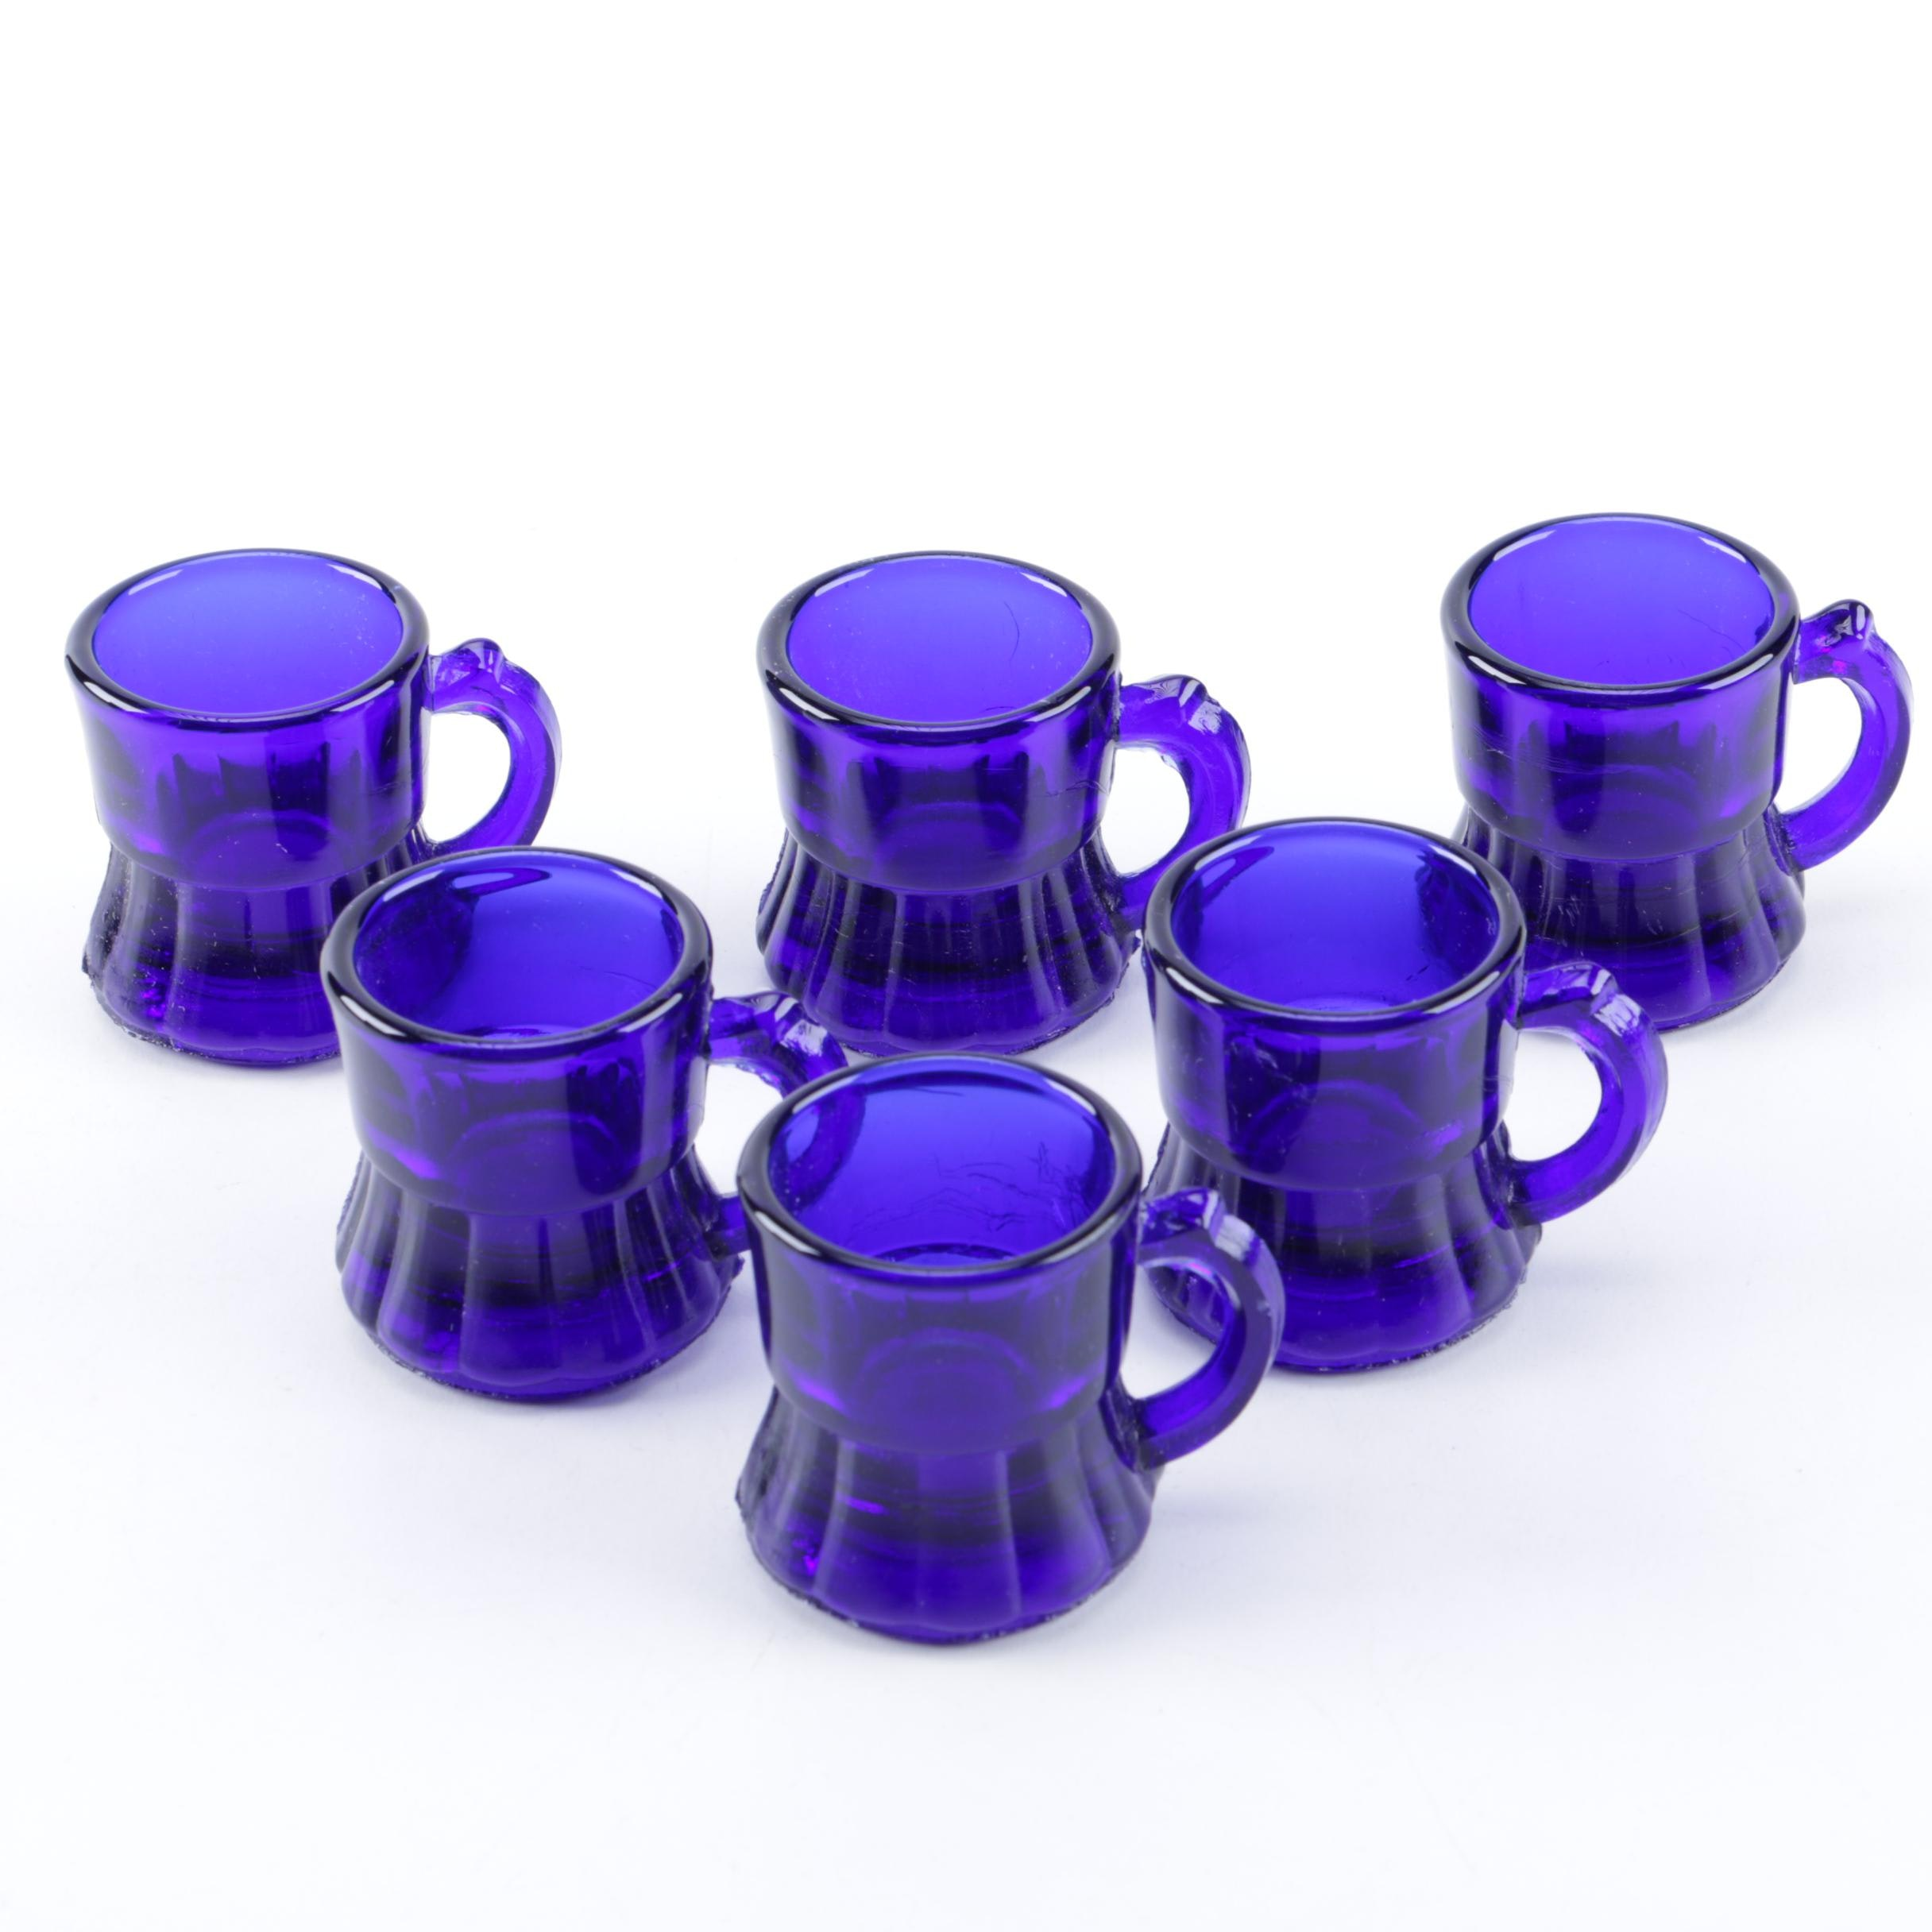 Set of Cobalt Blue Glass Diminutive Mugs